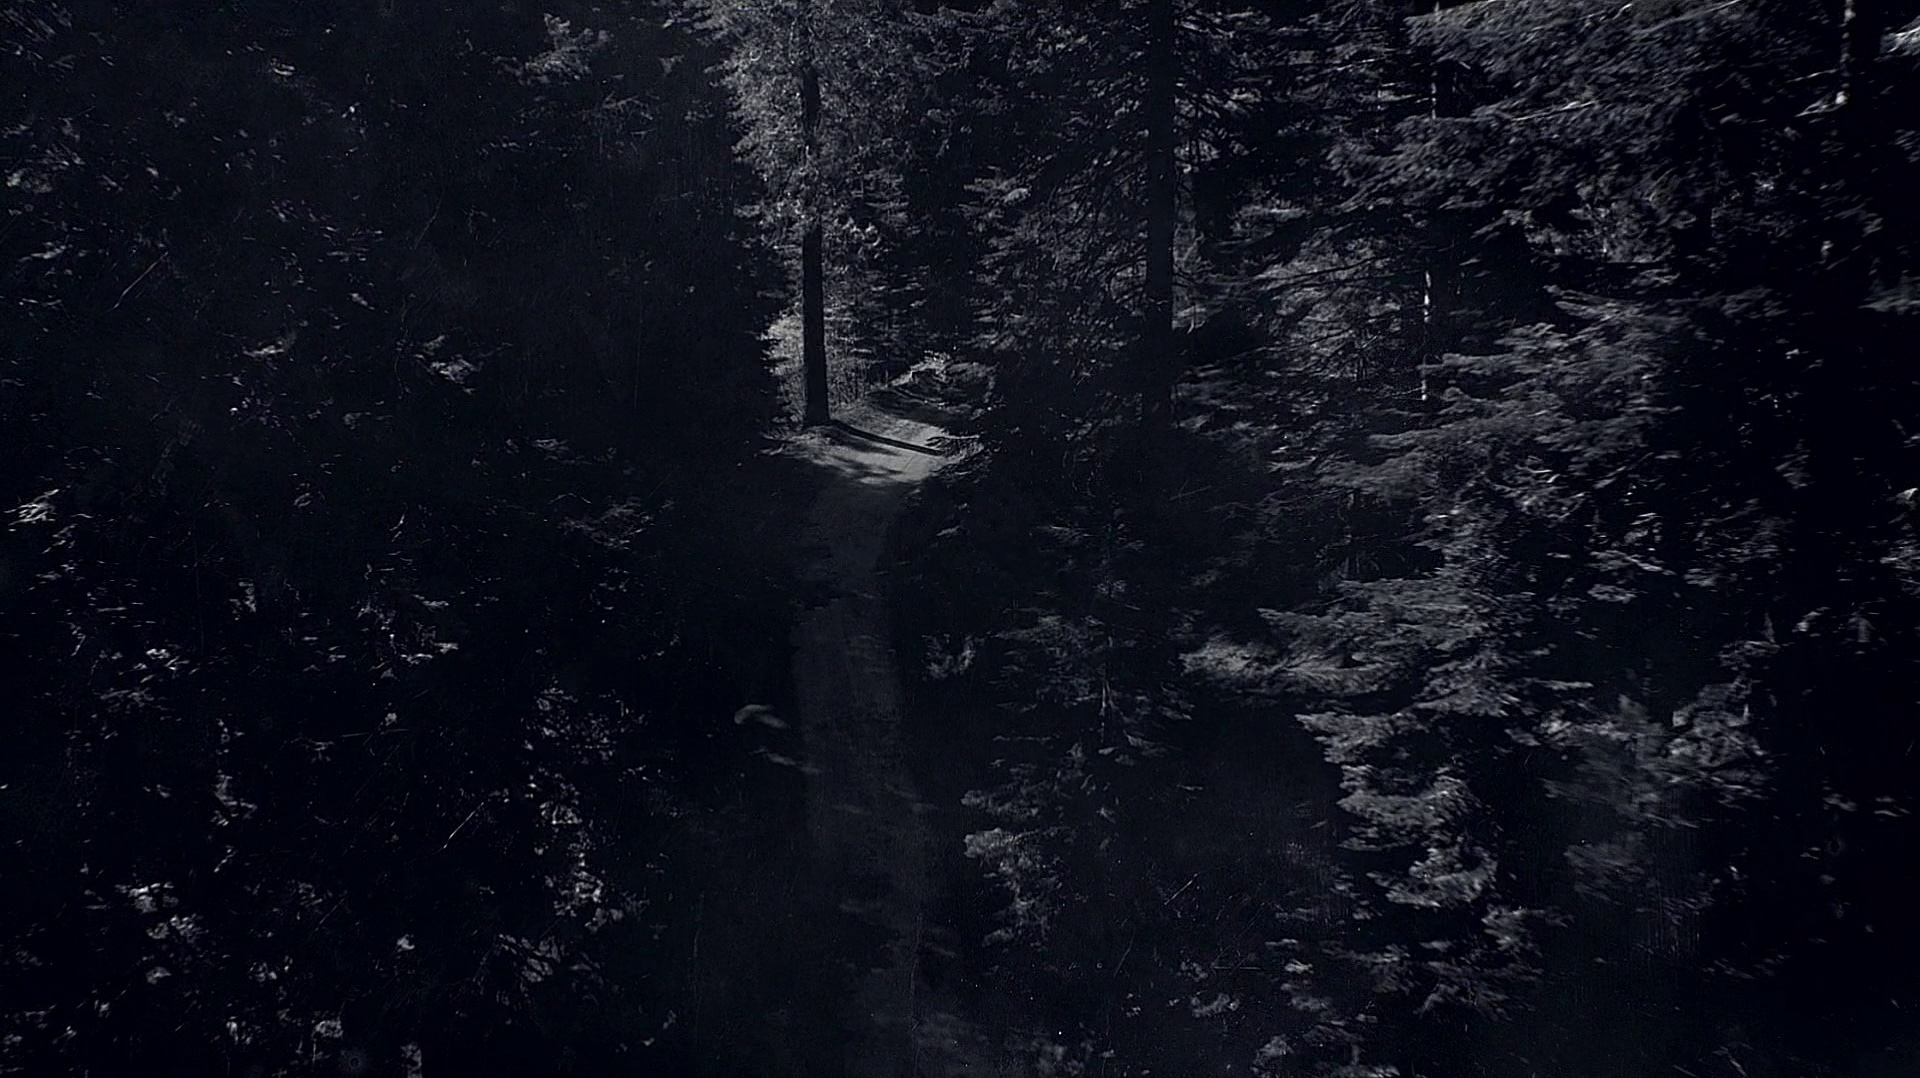 The title sequence's final shot